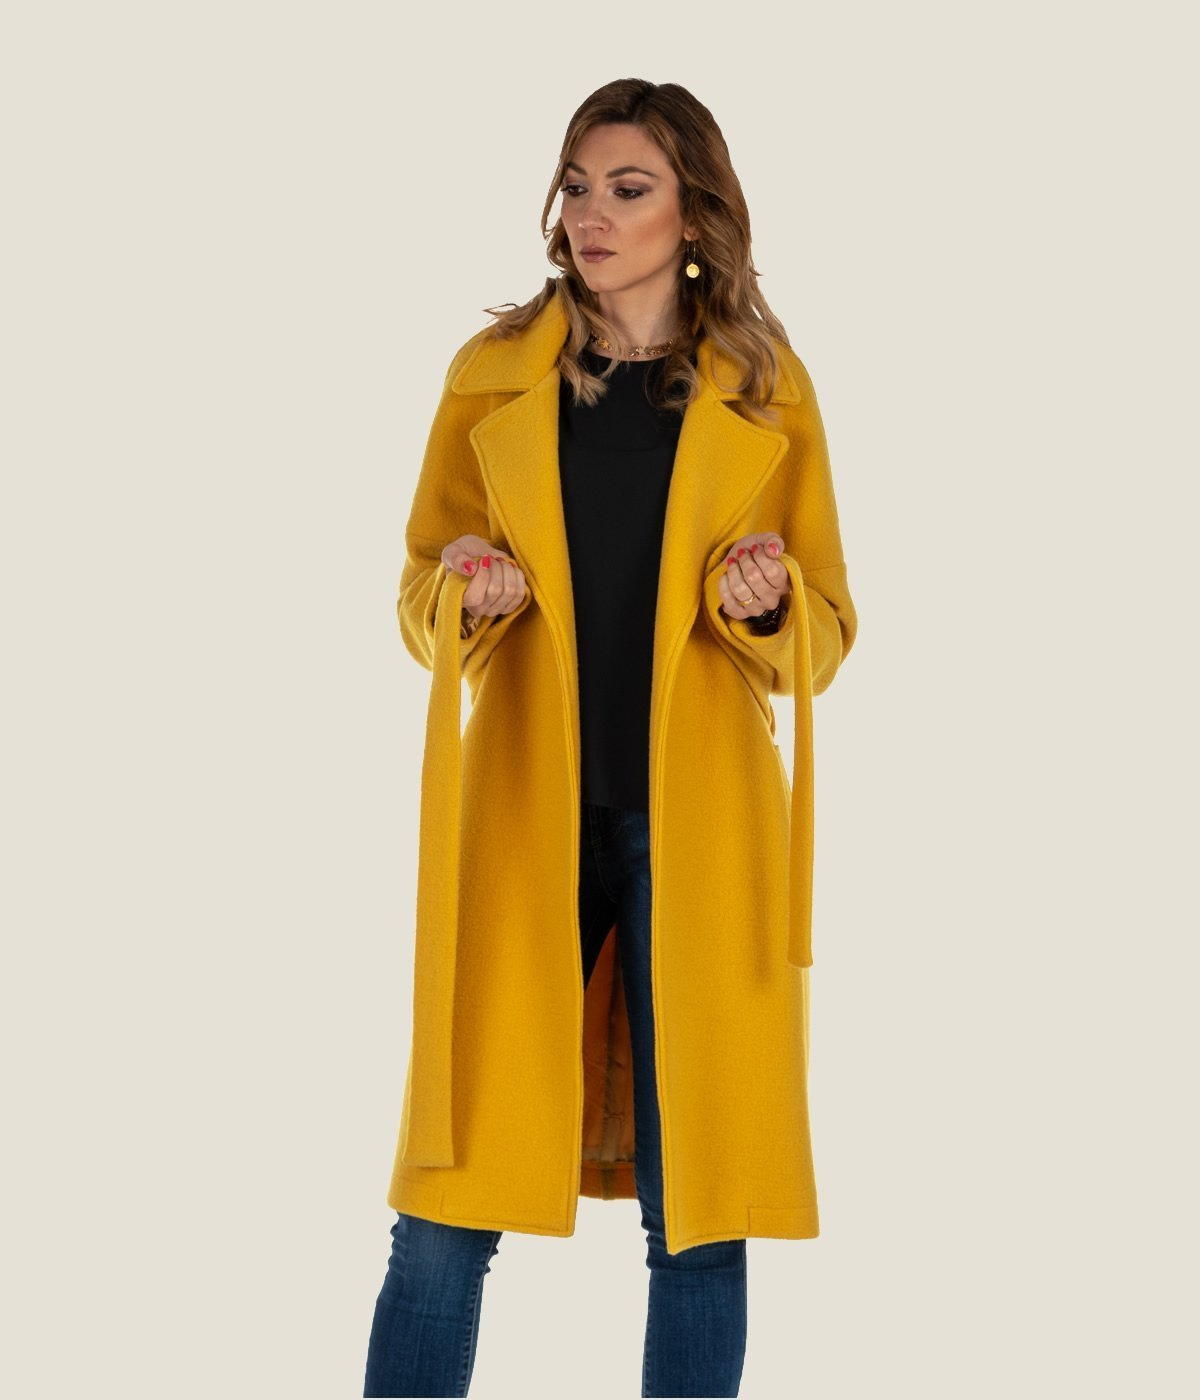 separation shoes c0eaf f114f CAPPOTTO DONNA DISTRETTO 12 LA FEMME GIALLO LANA HELLE MADE IN ITALY